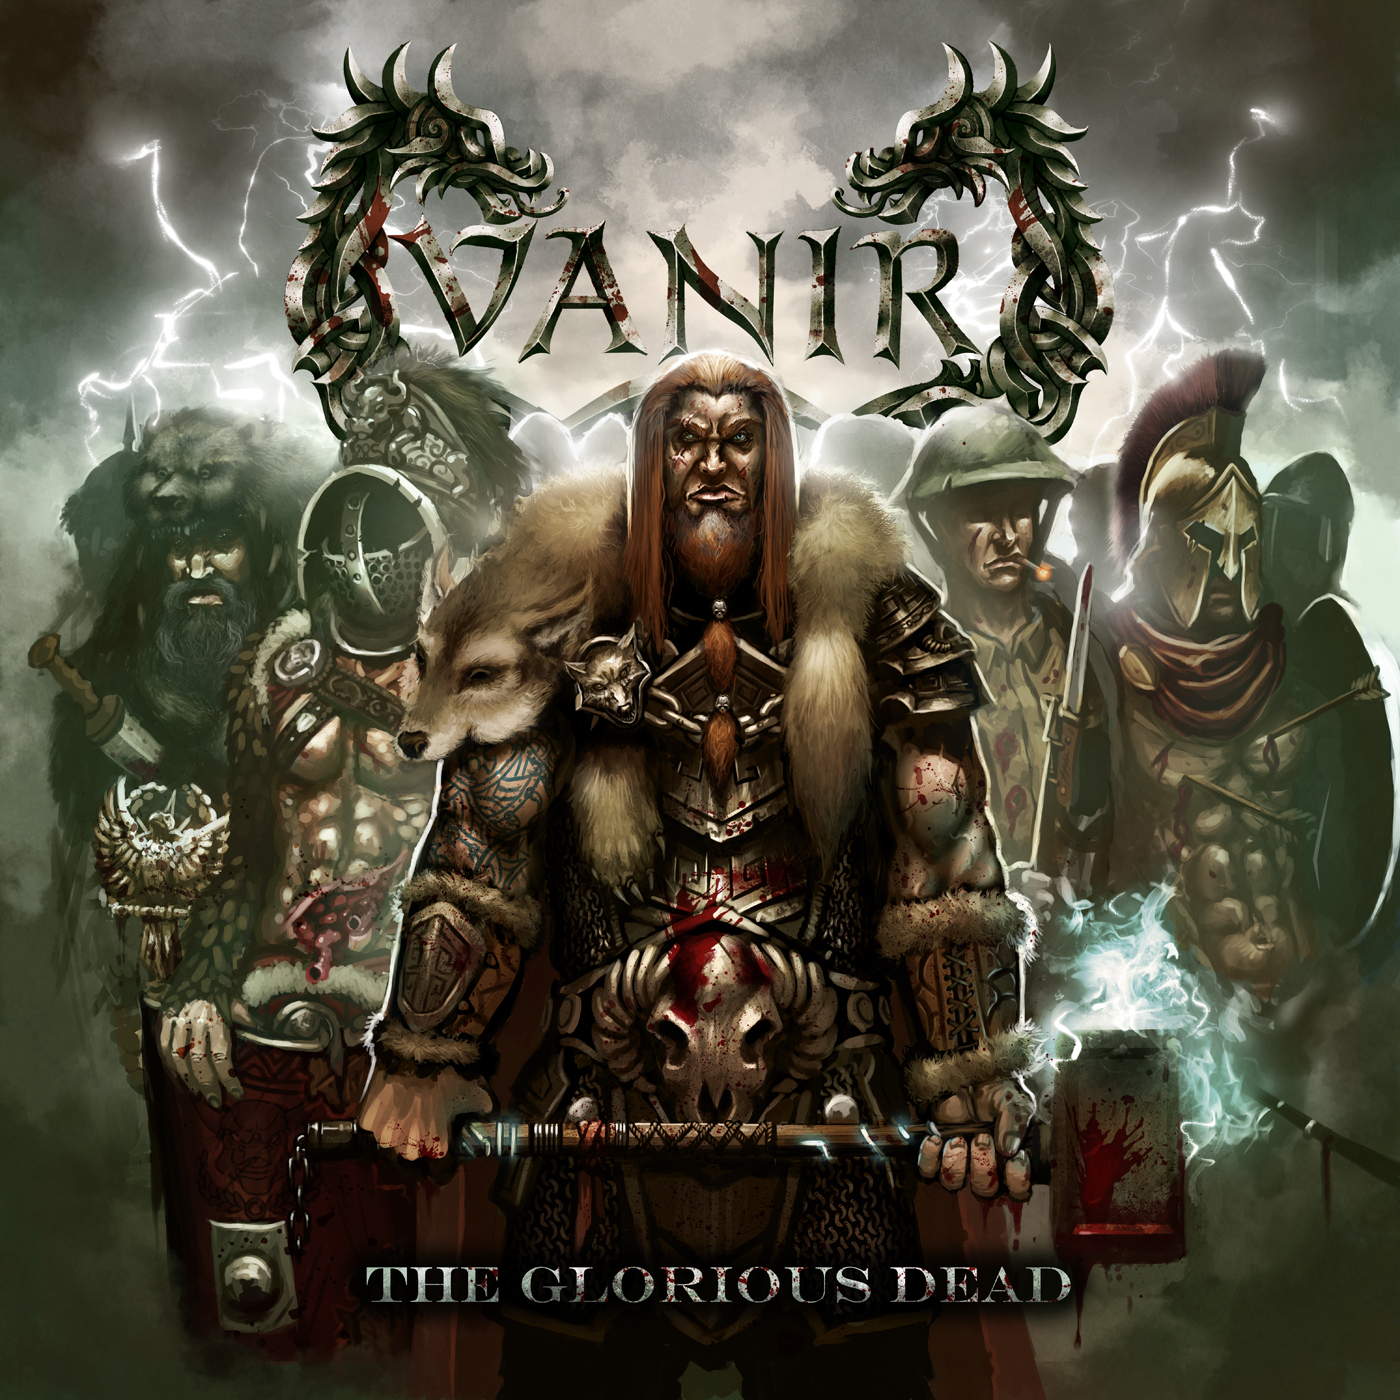 Scandinavian Wallpaper Hd Vanir The Glorious Dead Review Angry Metal Guy